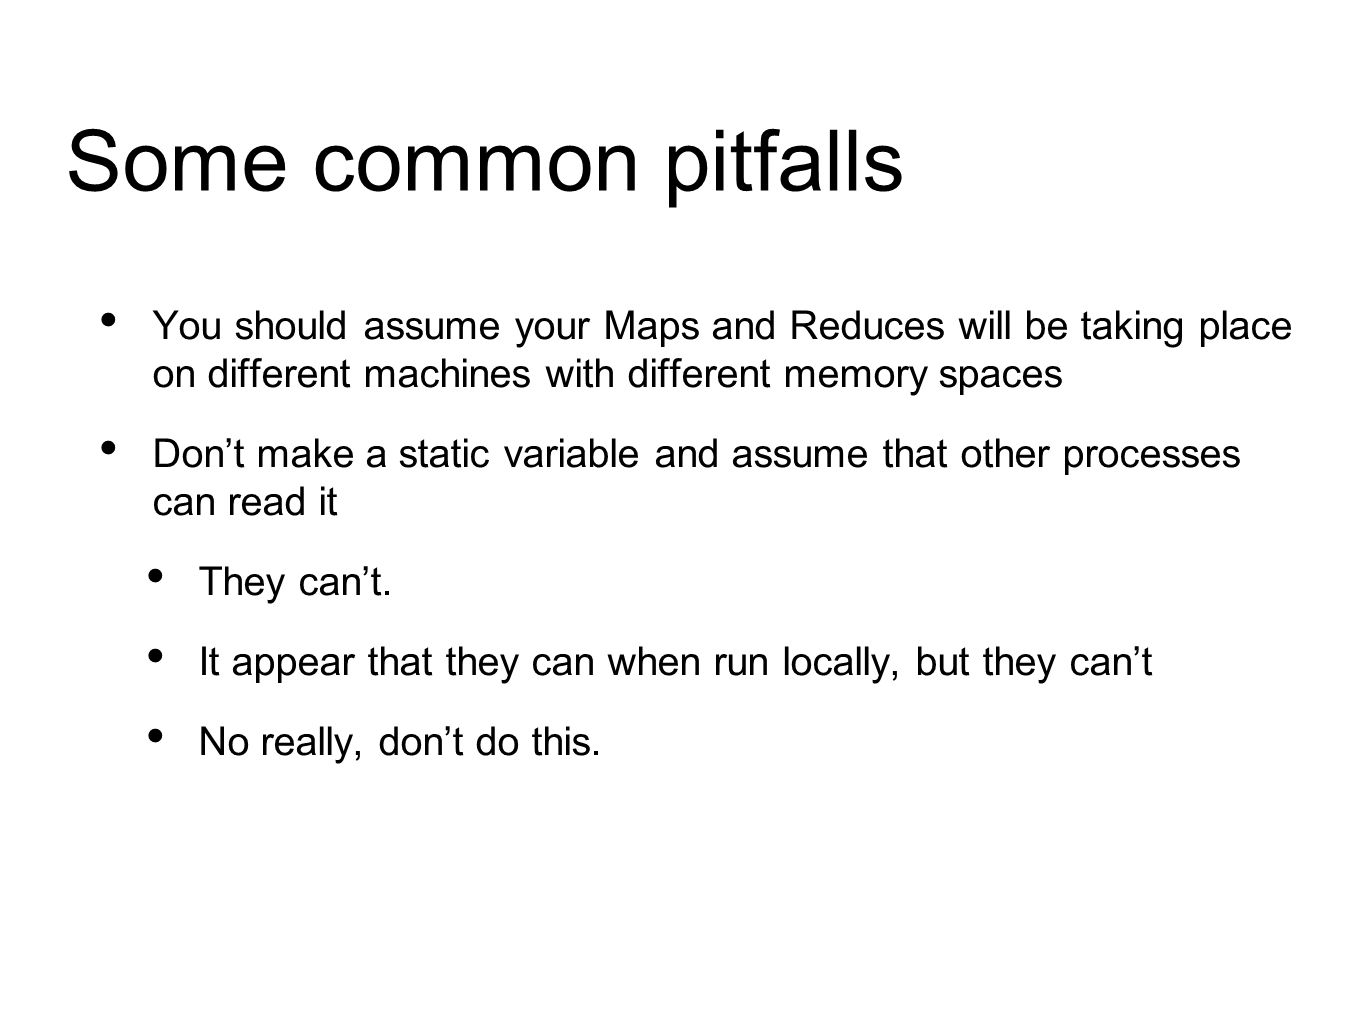 Some common pitfalls You should assume your Maps and Reduces will be taking place on different machines with different memory spaces Don't make a static variable and assume that other processes can read it They can't.